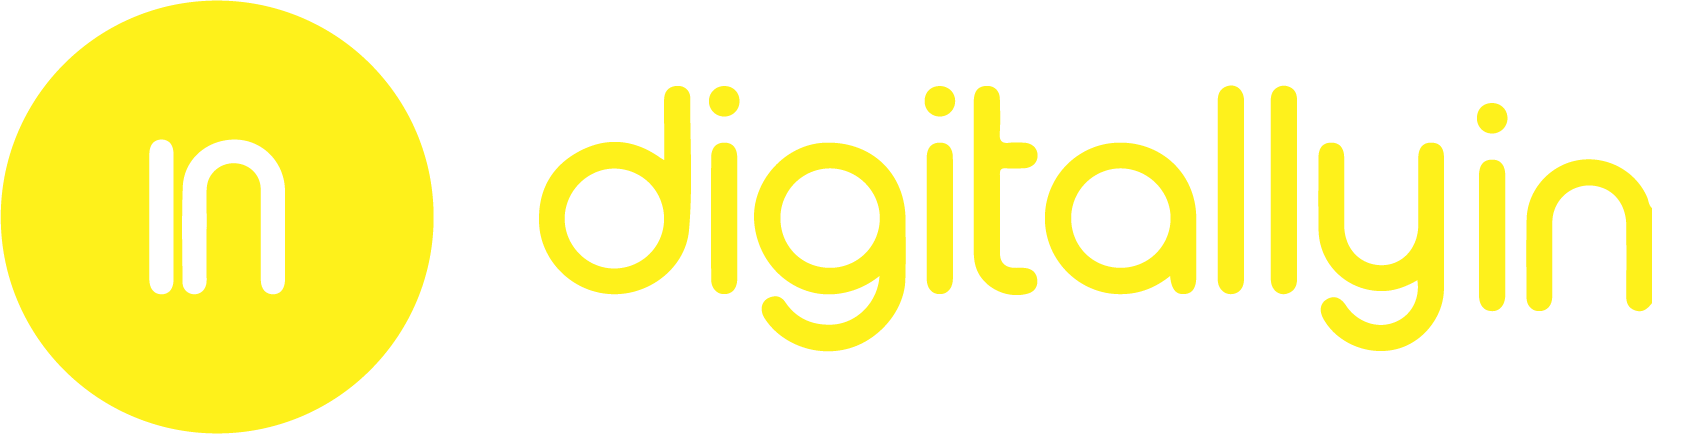 Digitallyin